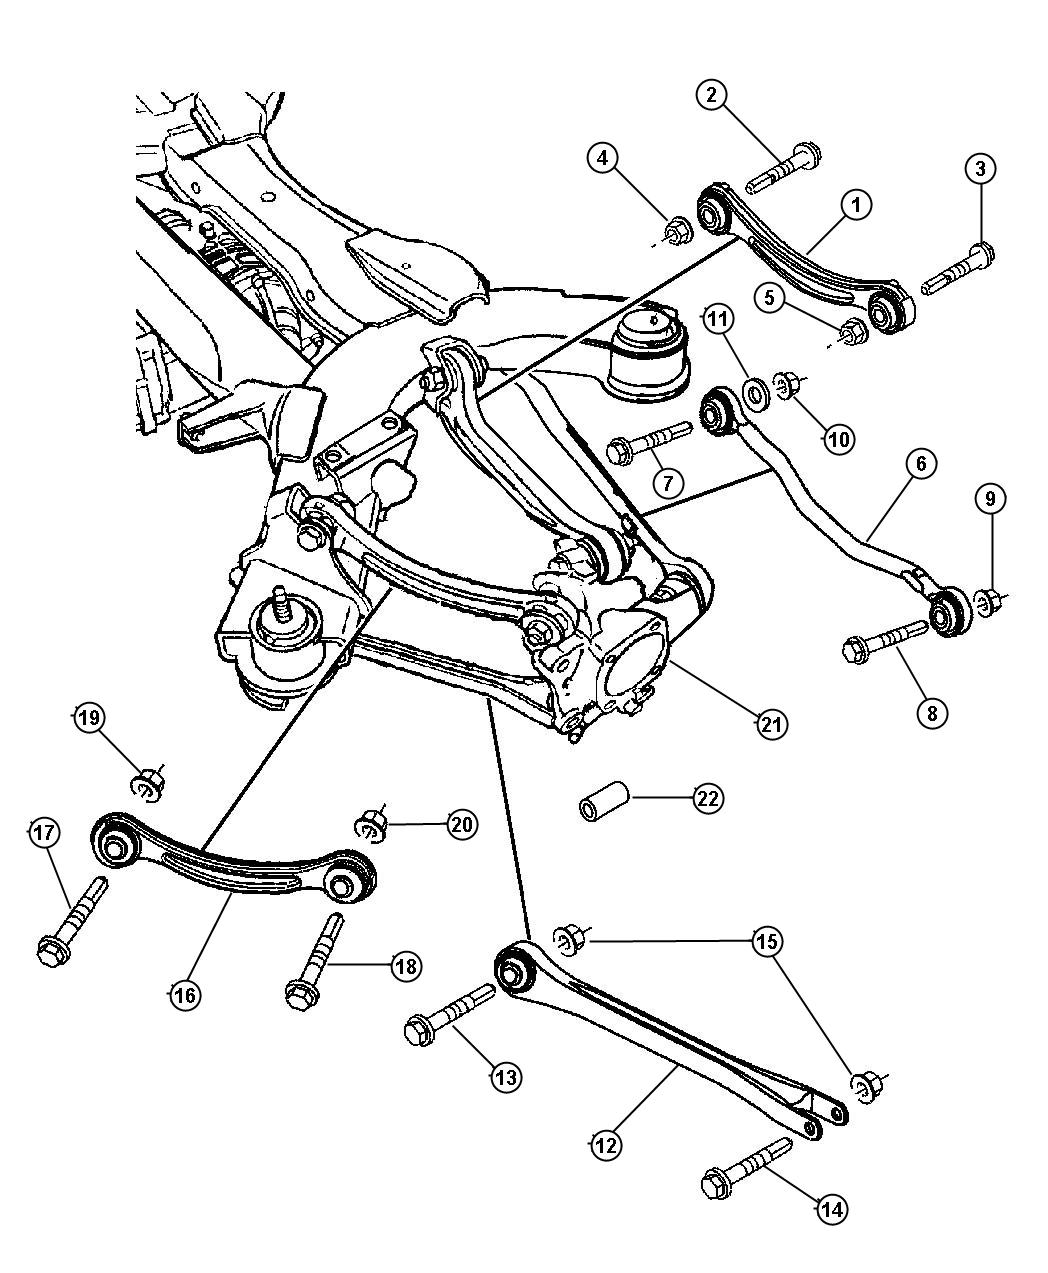 1958 chevy apache wiring diagram